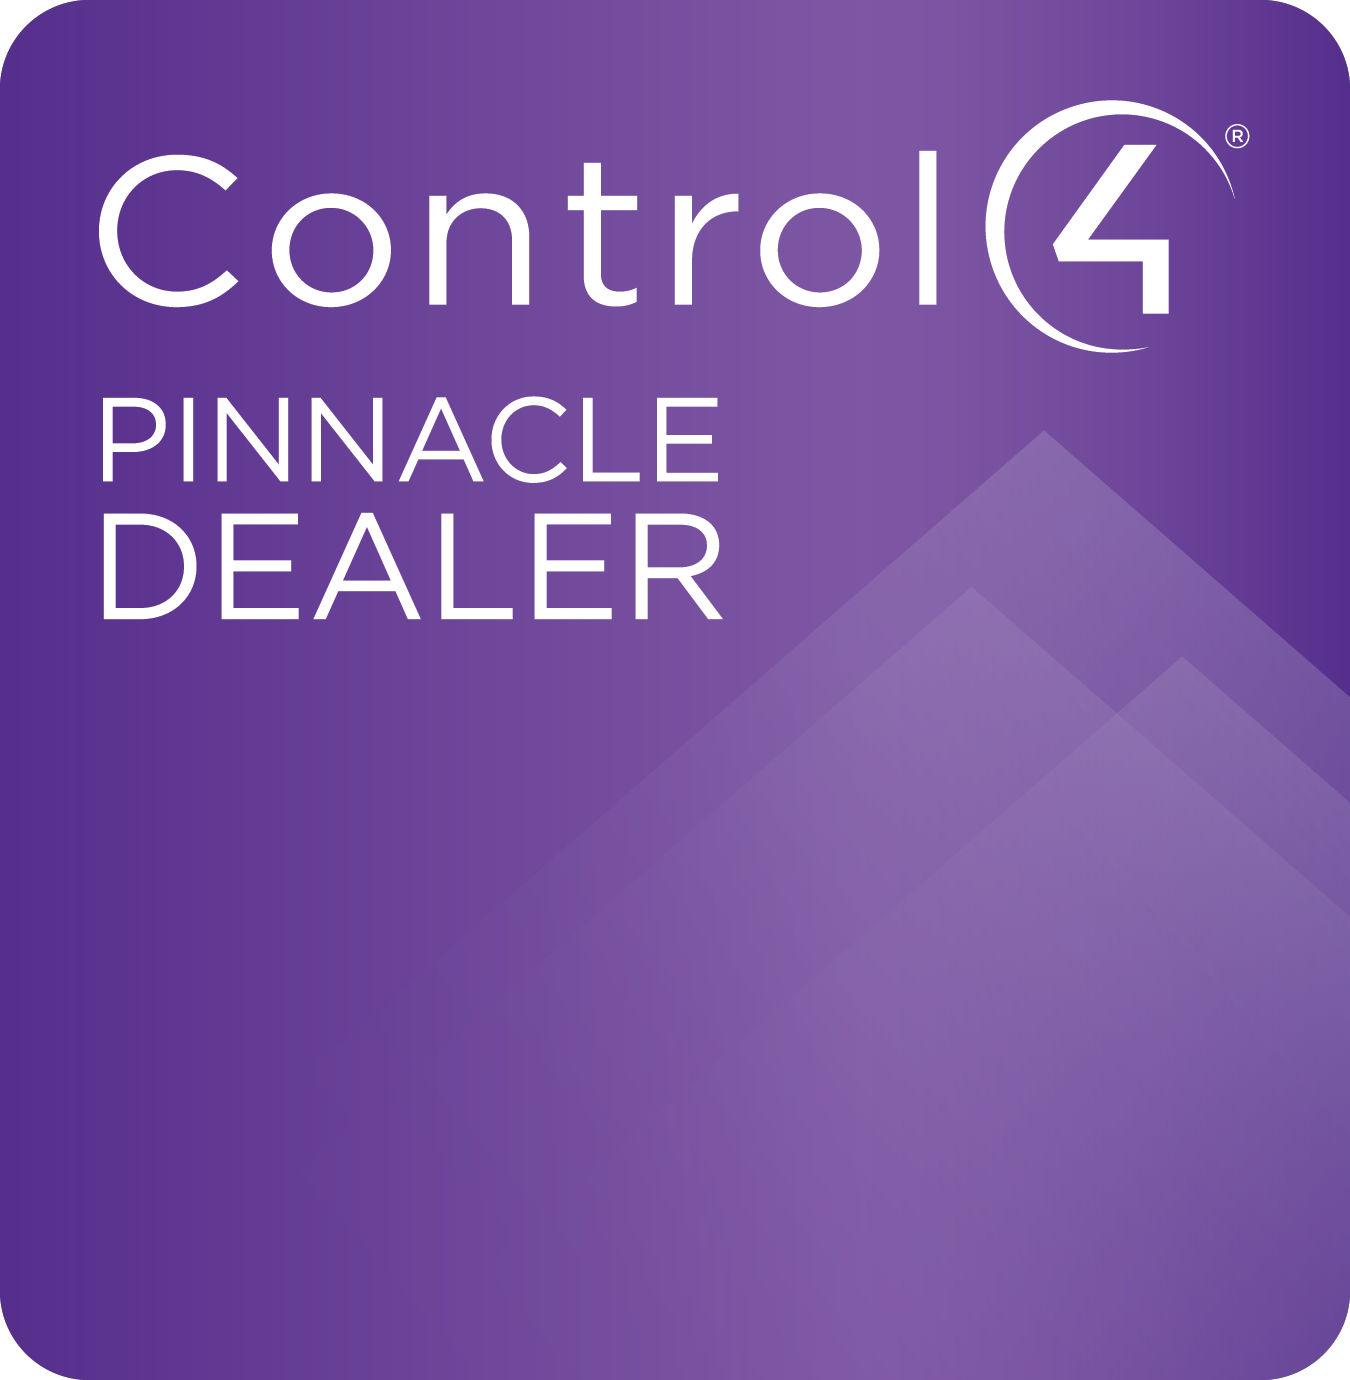 Contrl4 Dealer Pinnacle